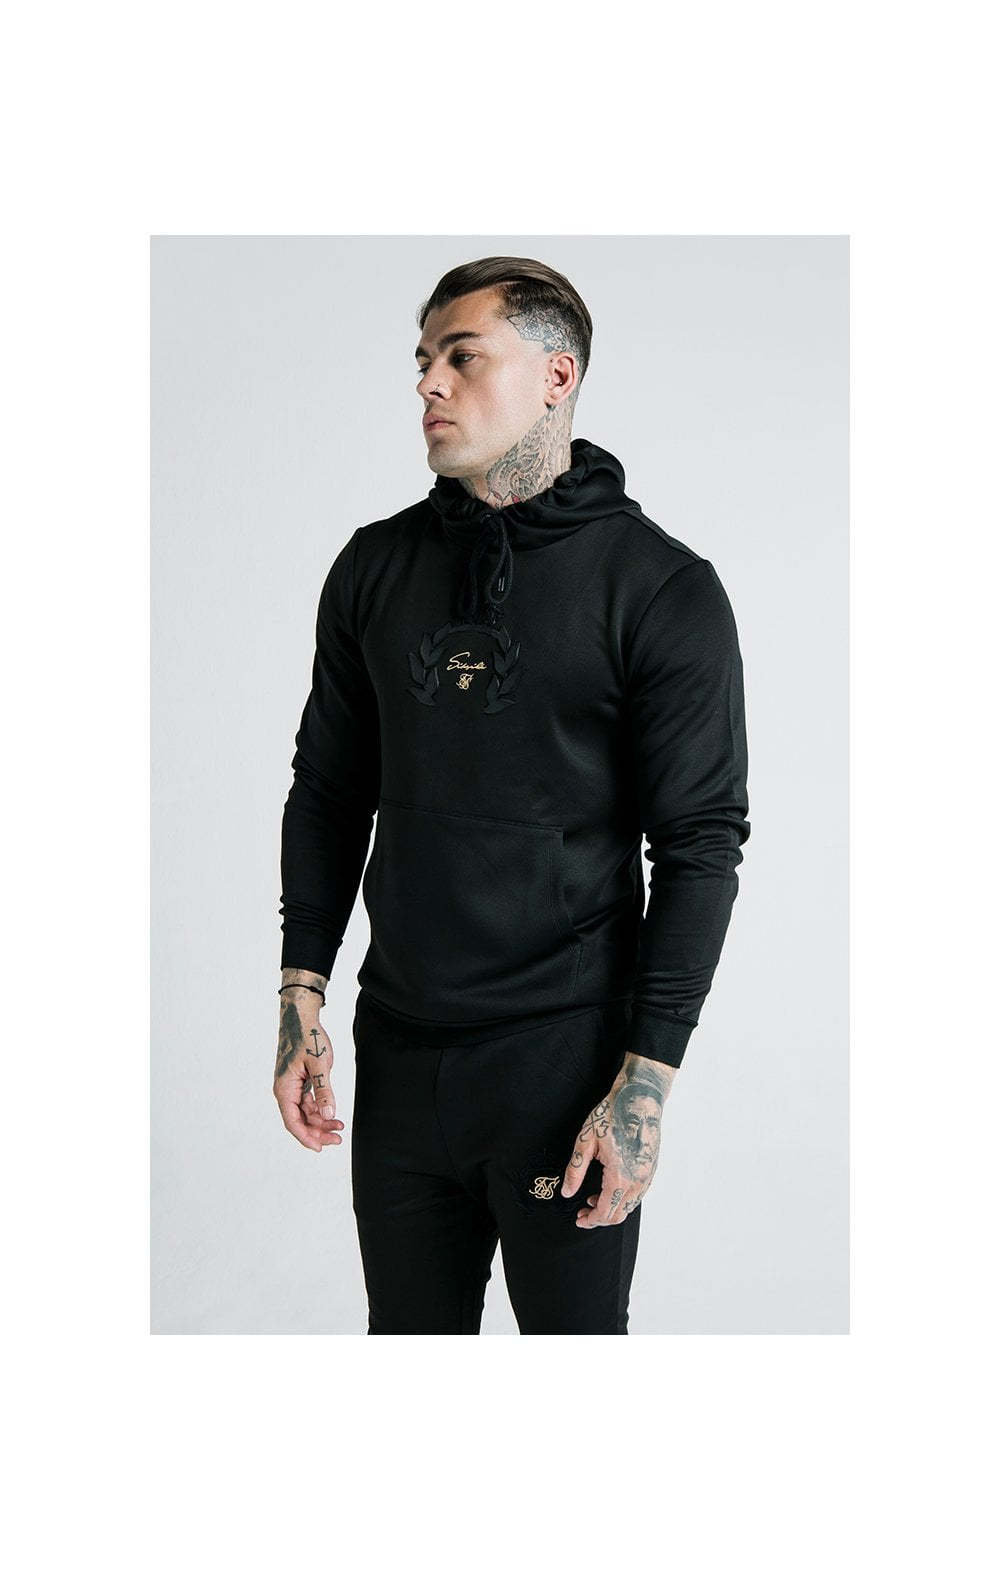 Load image into Gallery viewer, SikSilk x Dani Alves Muscle Fit Overhead Hoodie – Black (2)